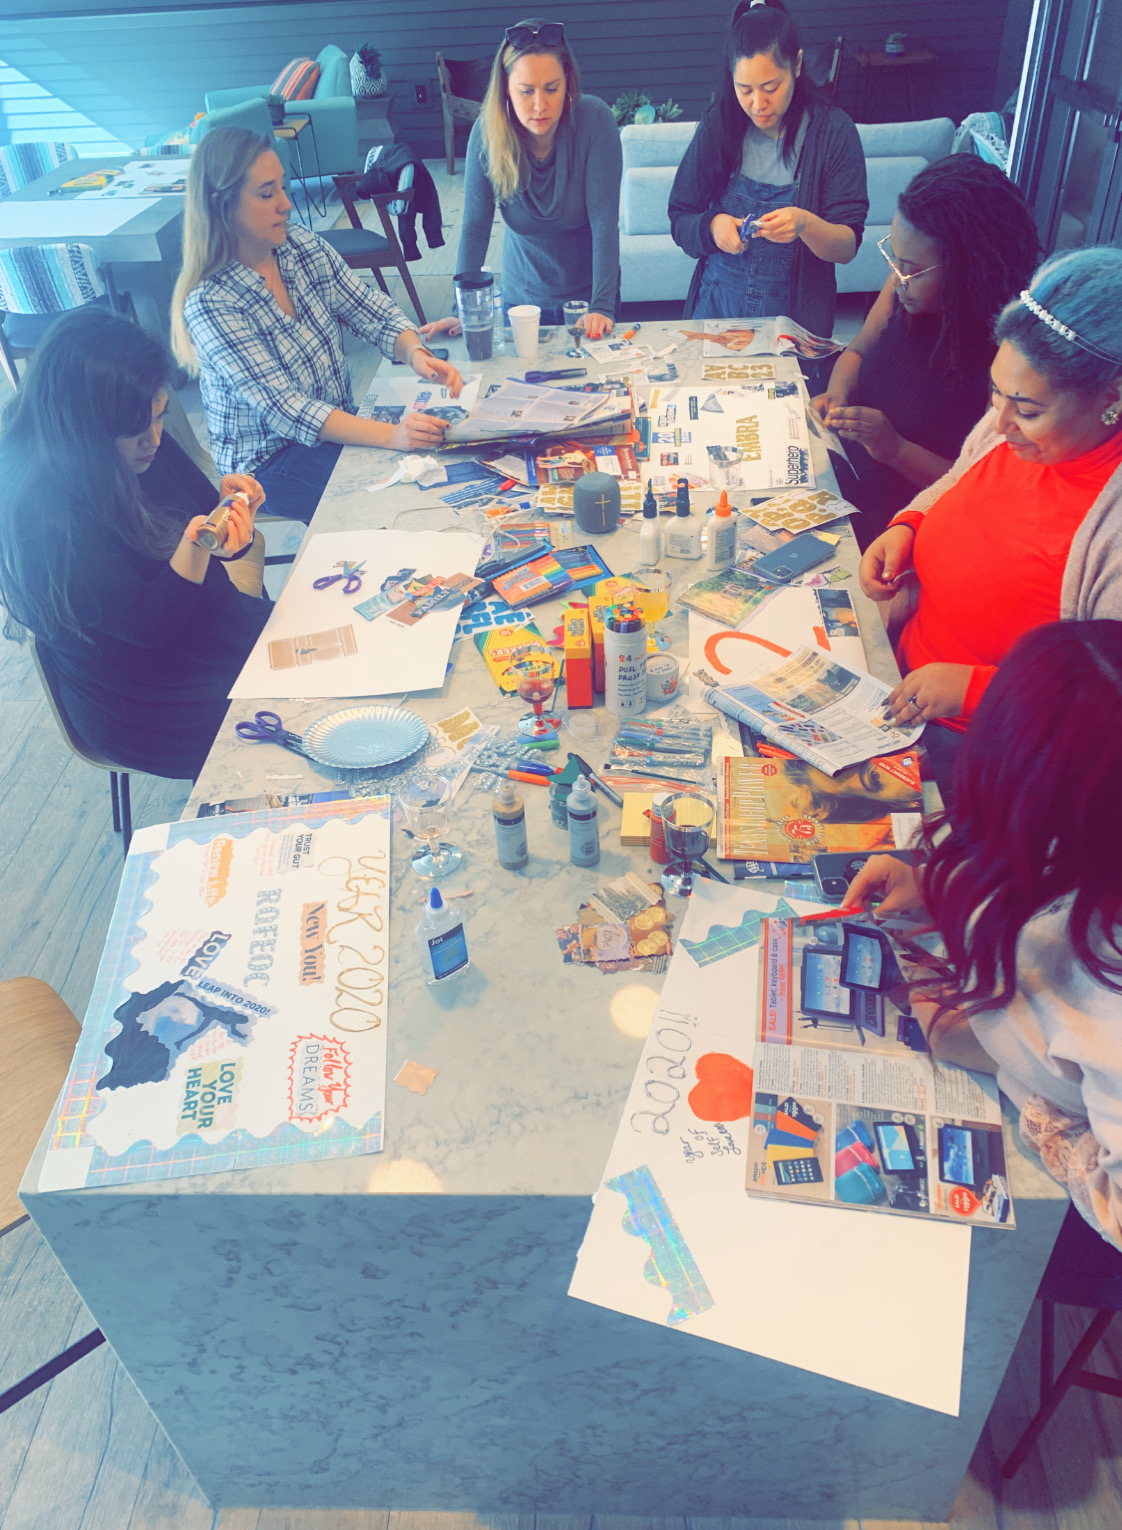 RQFEOC 2020 VISION BOARD PARTY